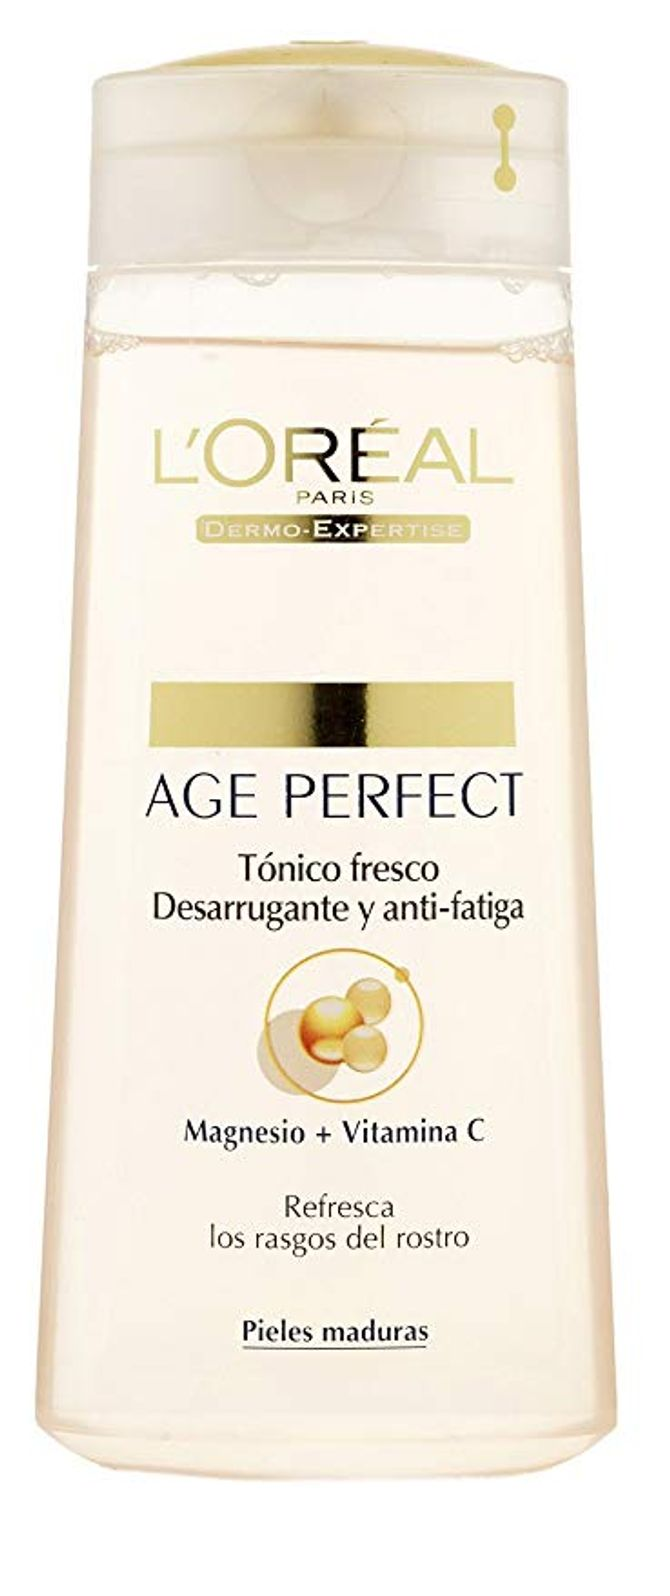 L'Oréal Paris Dermo-Expertise Age Perfect